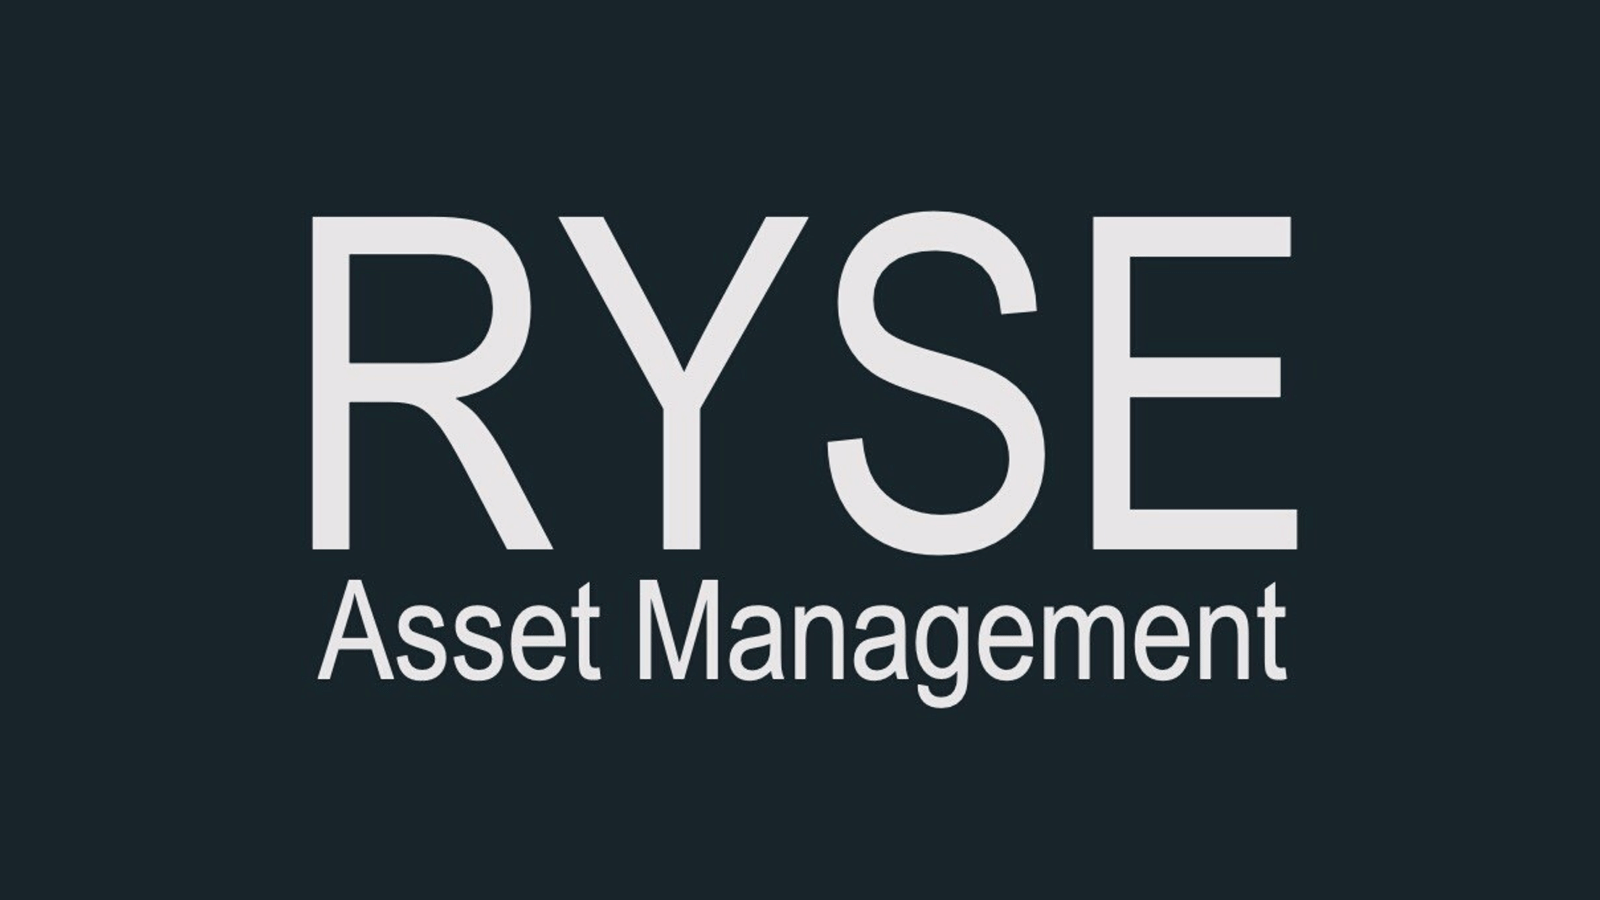 RYSE Asset Management